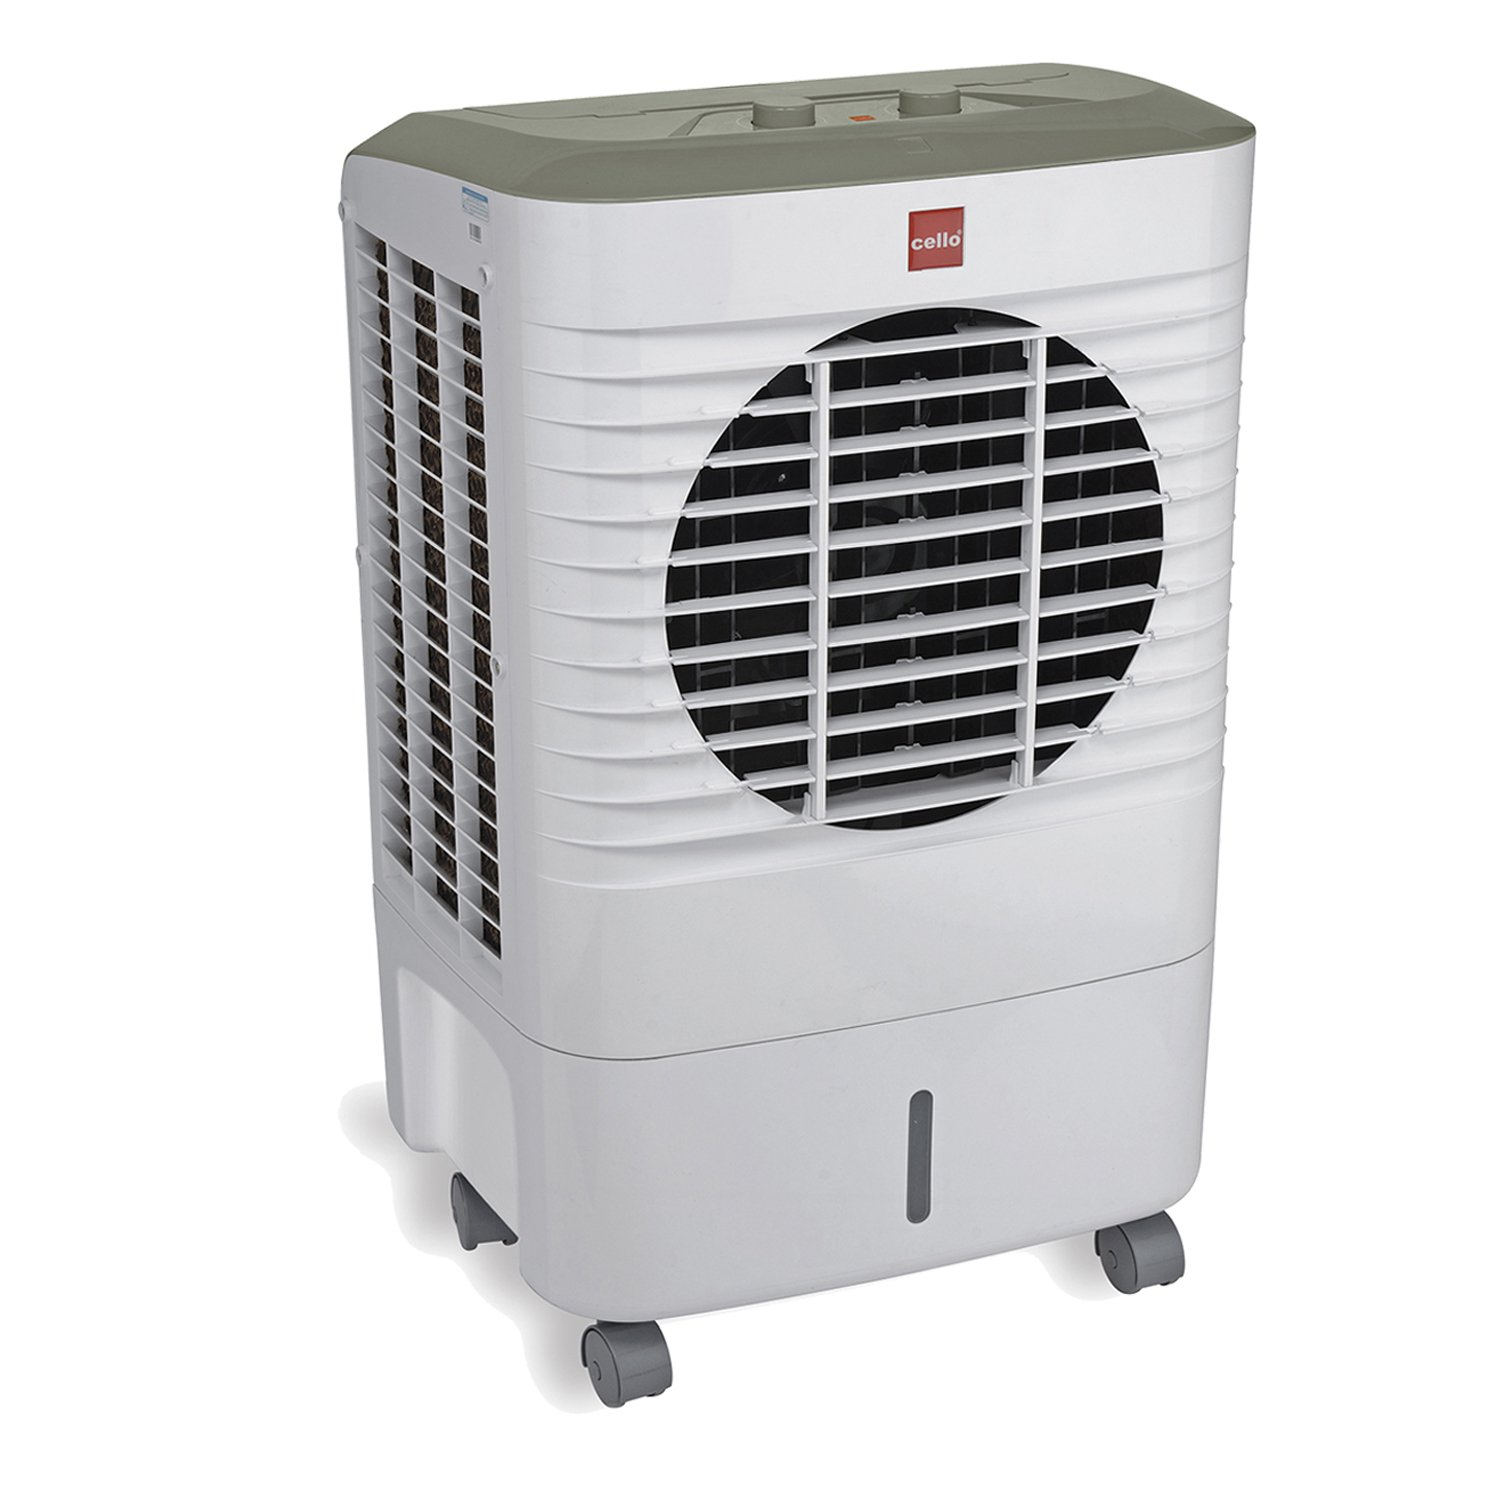 Air Cooler Fan : Cello smart litre air cooler white grey price in